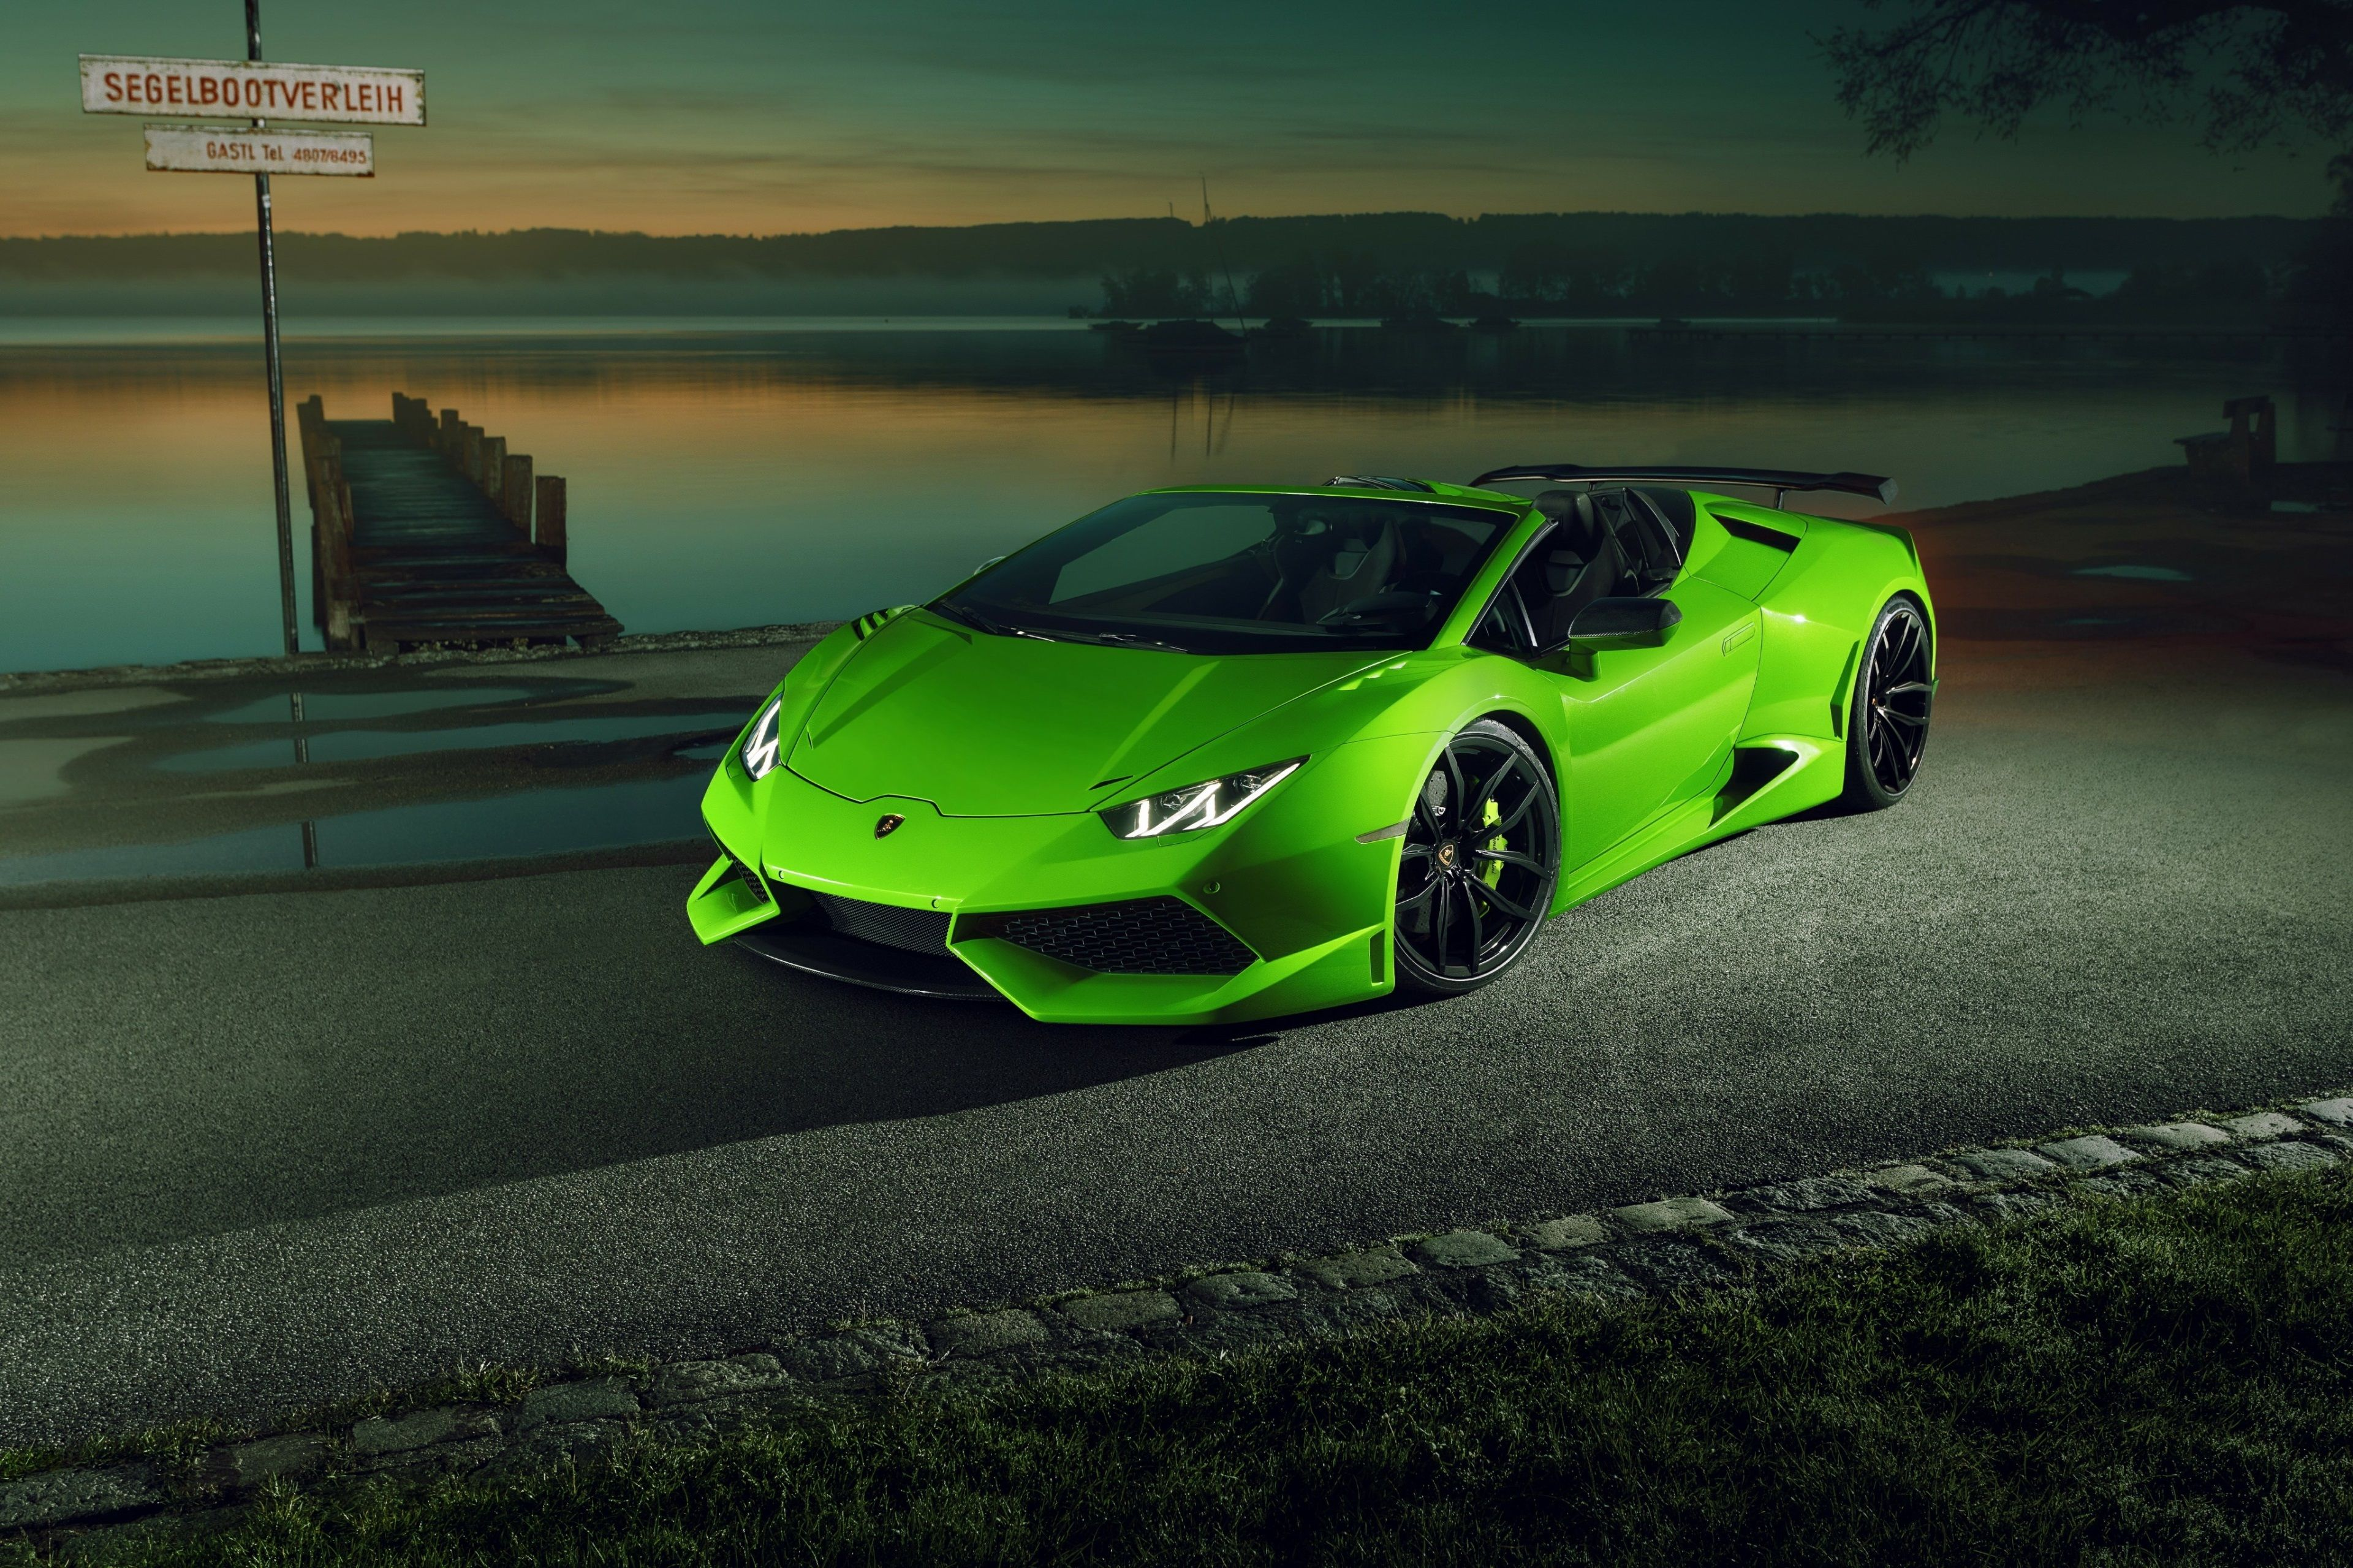 Collection of cars wallpaper in 4k, 5k and mobile resolutions. Sports Car Car Wallpaper 4k For Pc